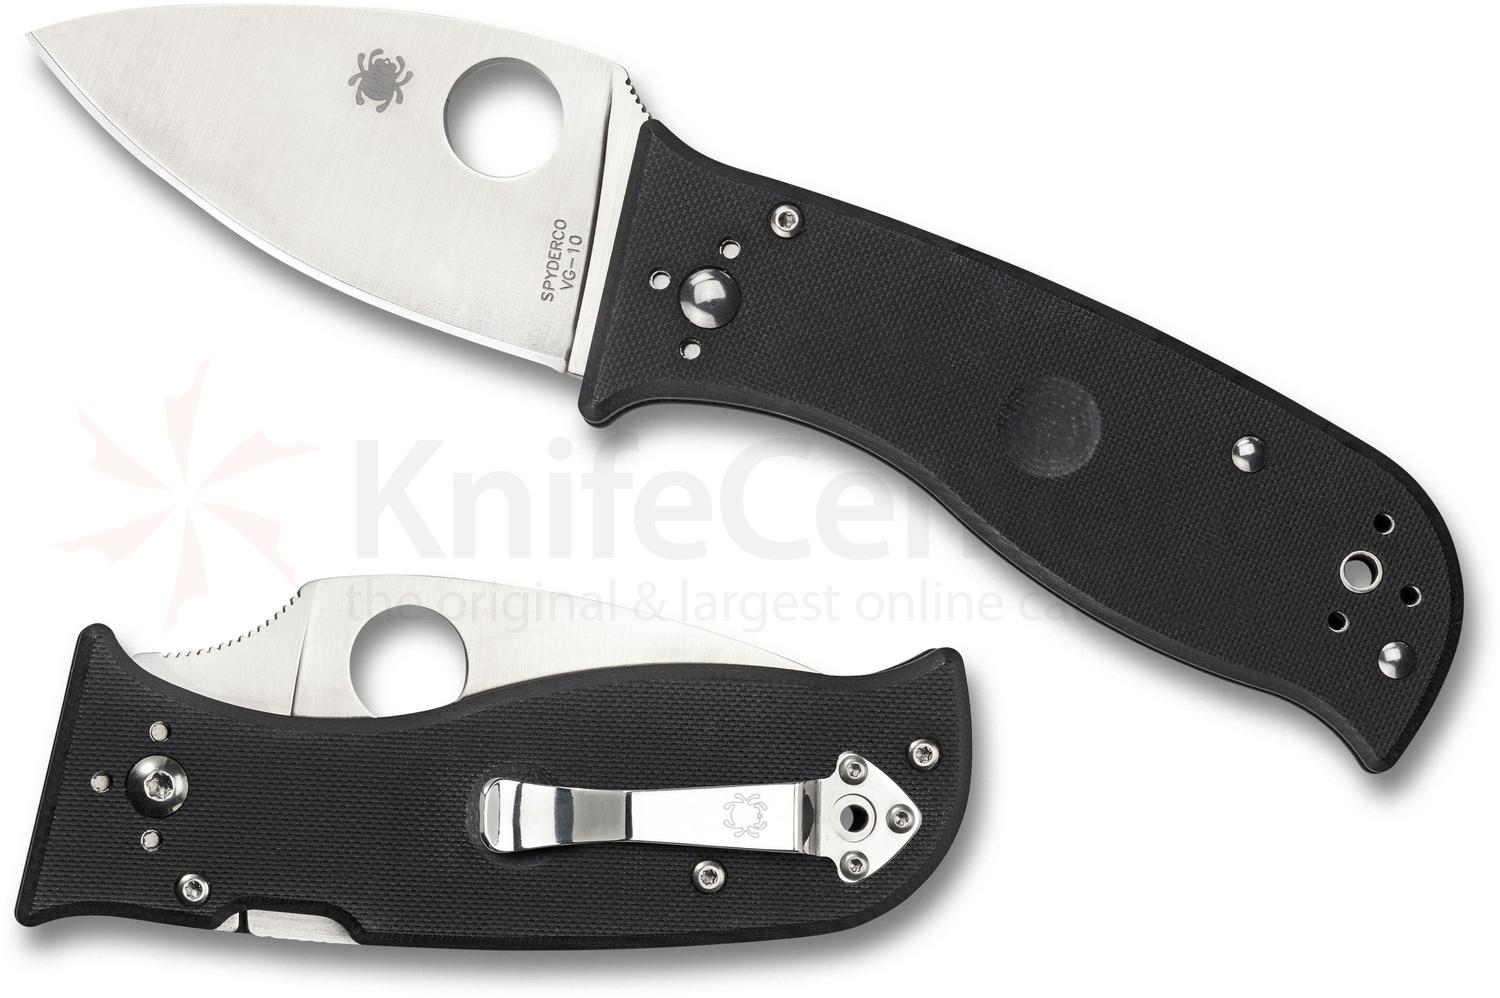 Spyderco Lil' Temperance 3 Folding Knife 2.9 inch S30V Satin Plain Blade, Black G10 Handles